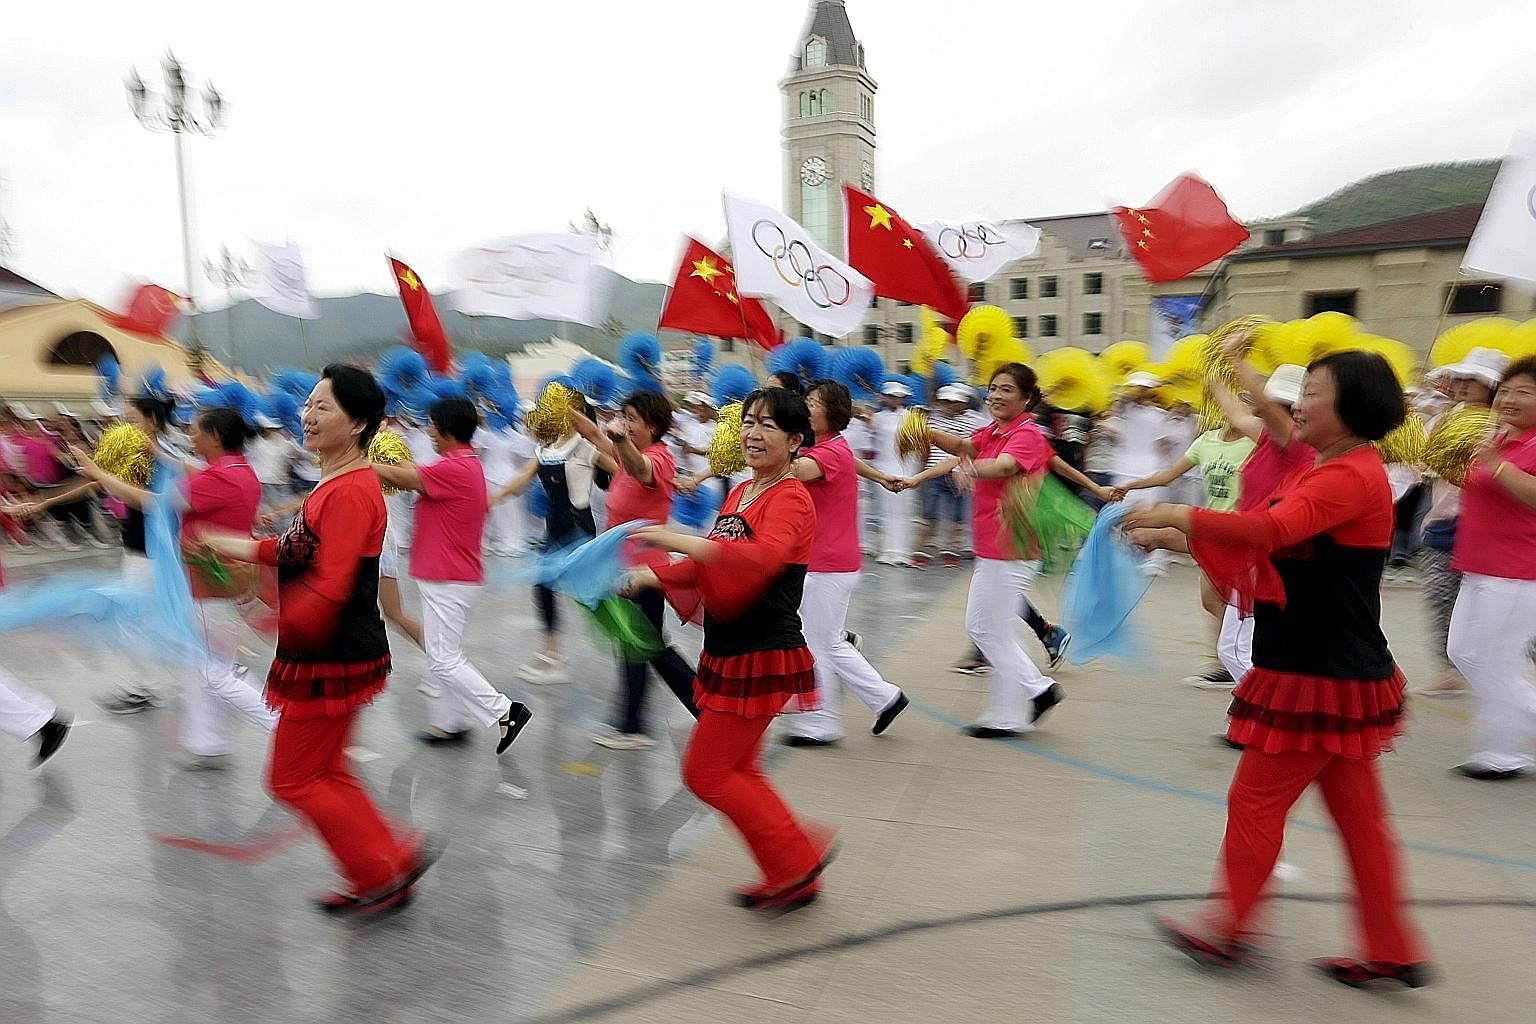 Local residents dance during a rehearsal for a possible celebration today at a square in Chongli county, administered by Zhangjiakou, which is jointly bidding with the capital Beijing to host the 2022 Winter Olympic Games. Beijing, which hosted the 2